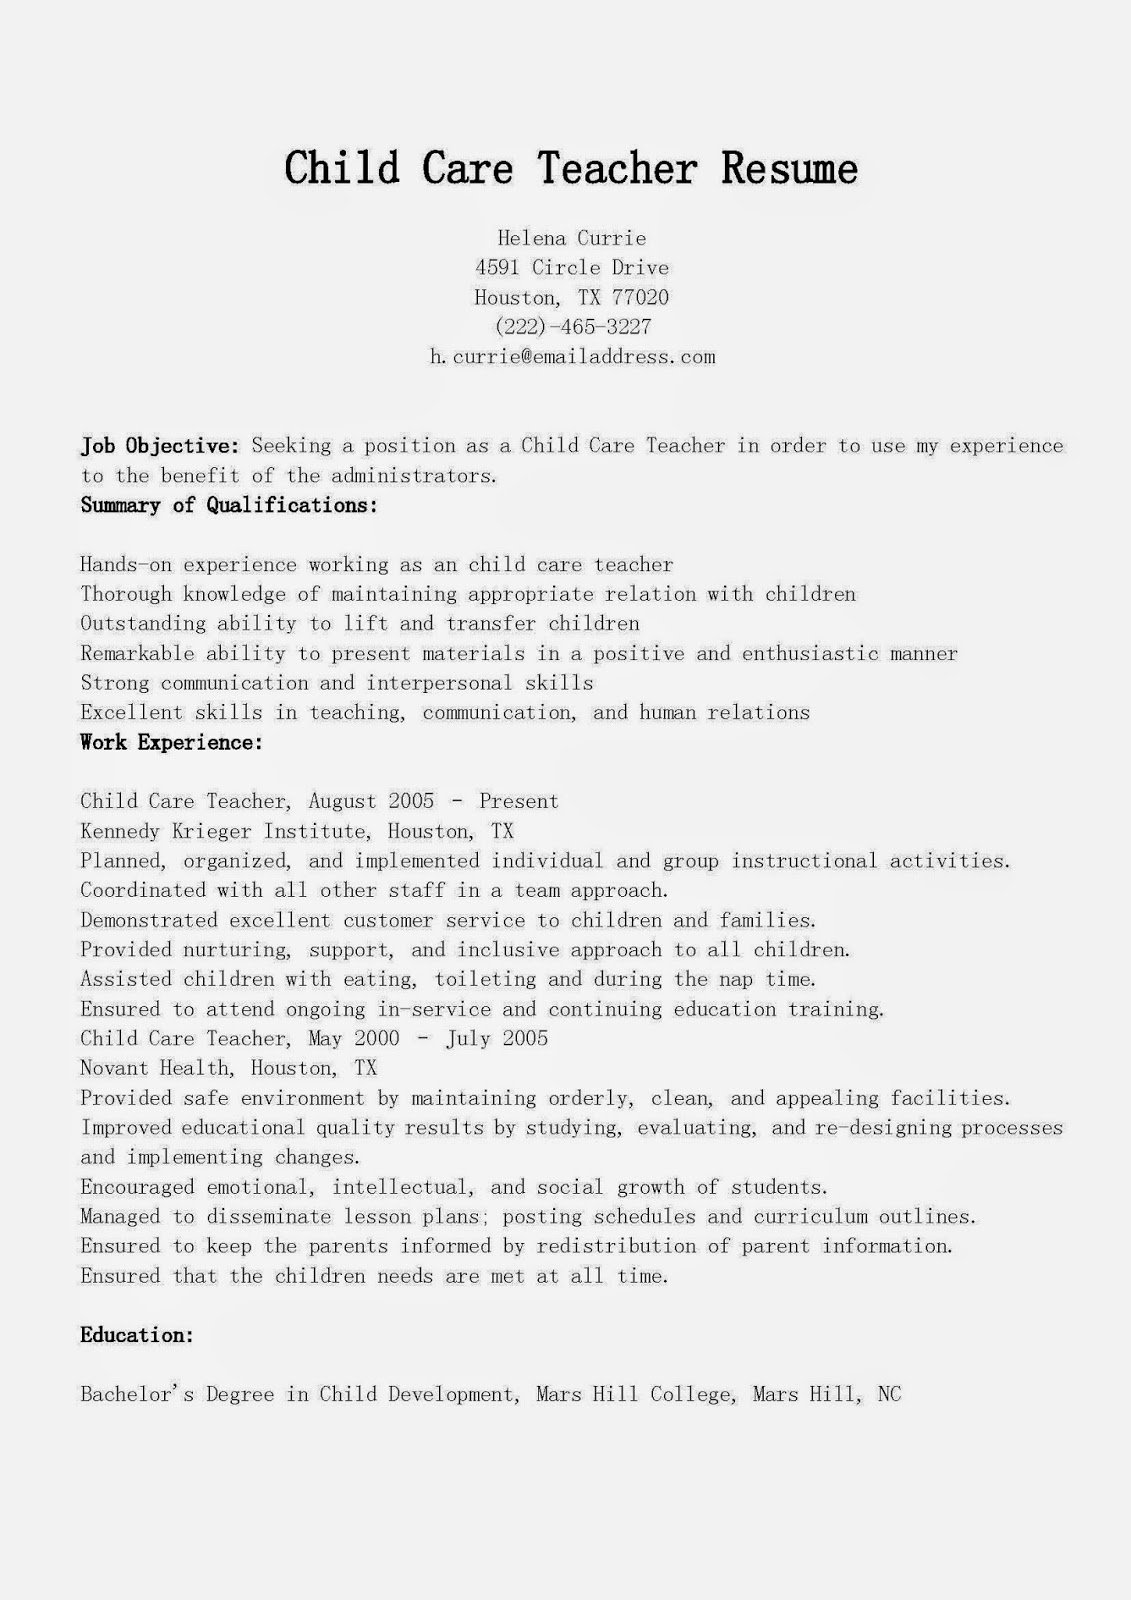 Sample Resume for Child Care Inspirational Resume Samples Child Care Teacher Resume Sample